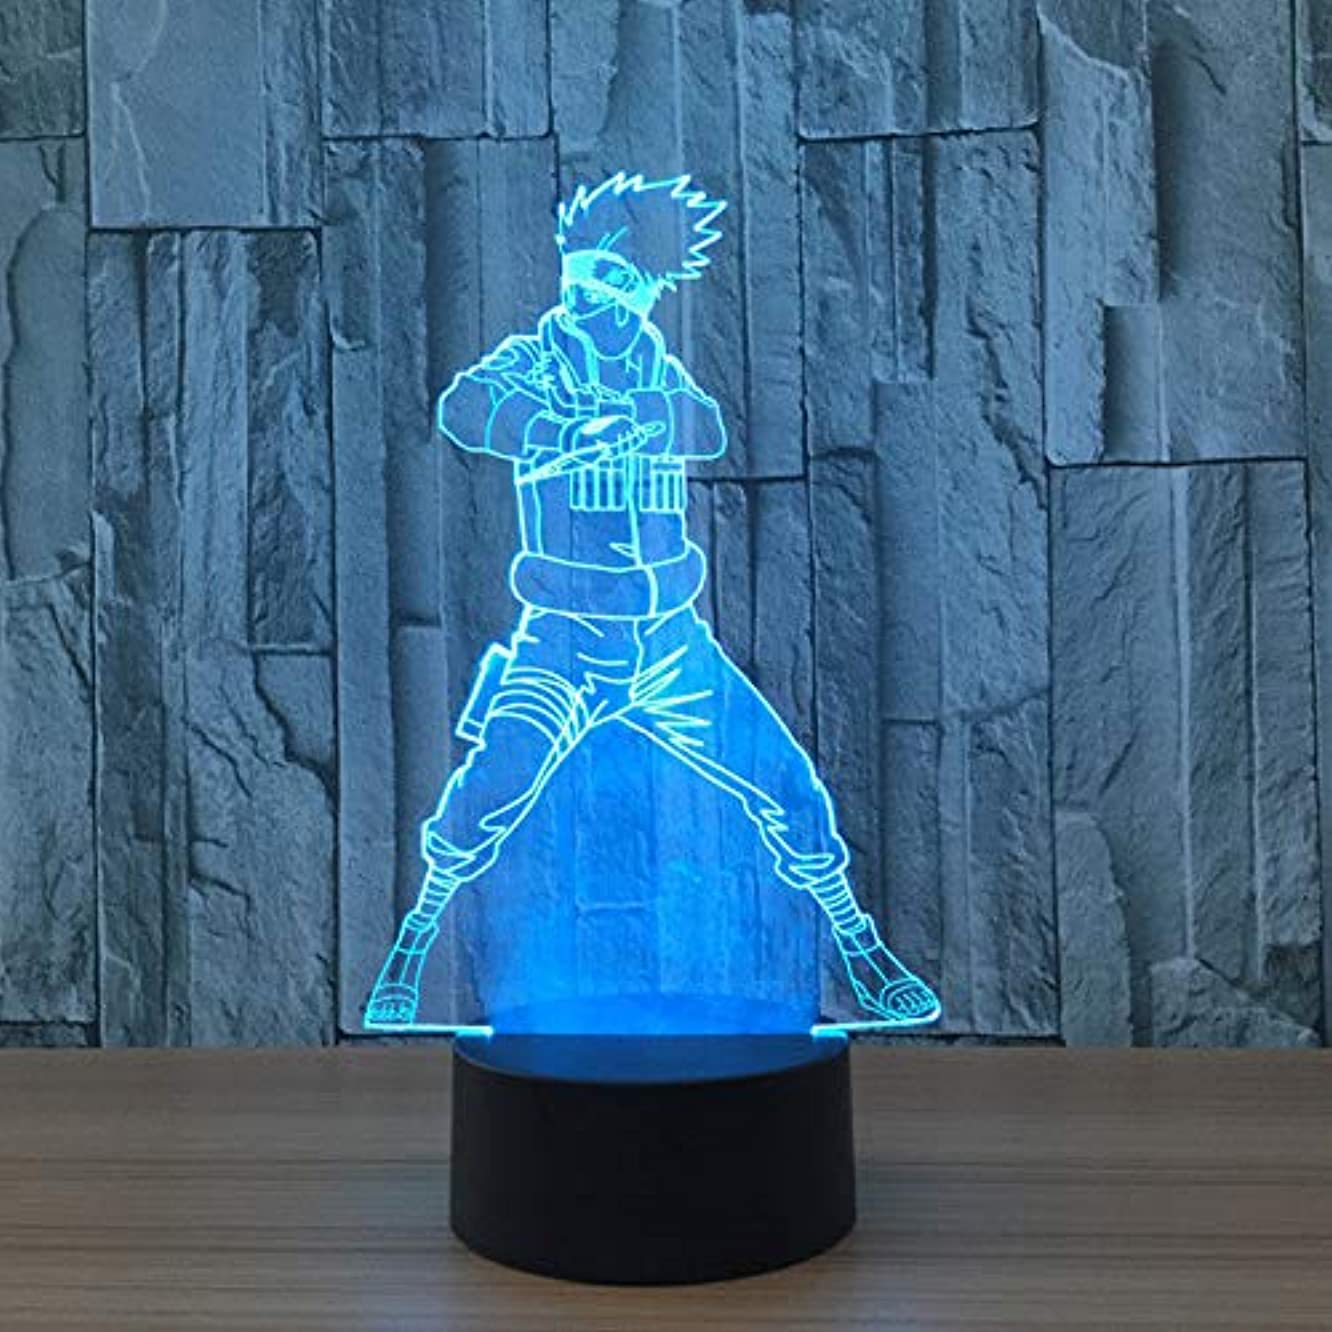 LLWWRR1 7 Colors 3D Led Lamp Naruto Action Figure Kakashi Night Lights 3D Visual Lights Desk Luminaria Touch Switch Lamp Creative Gifts